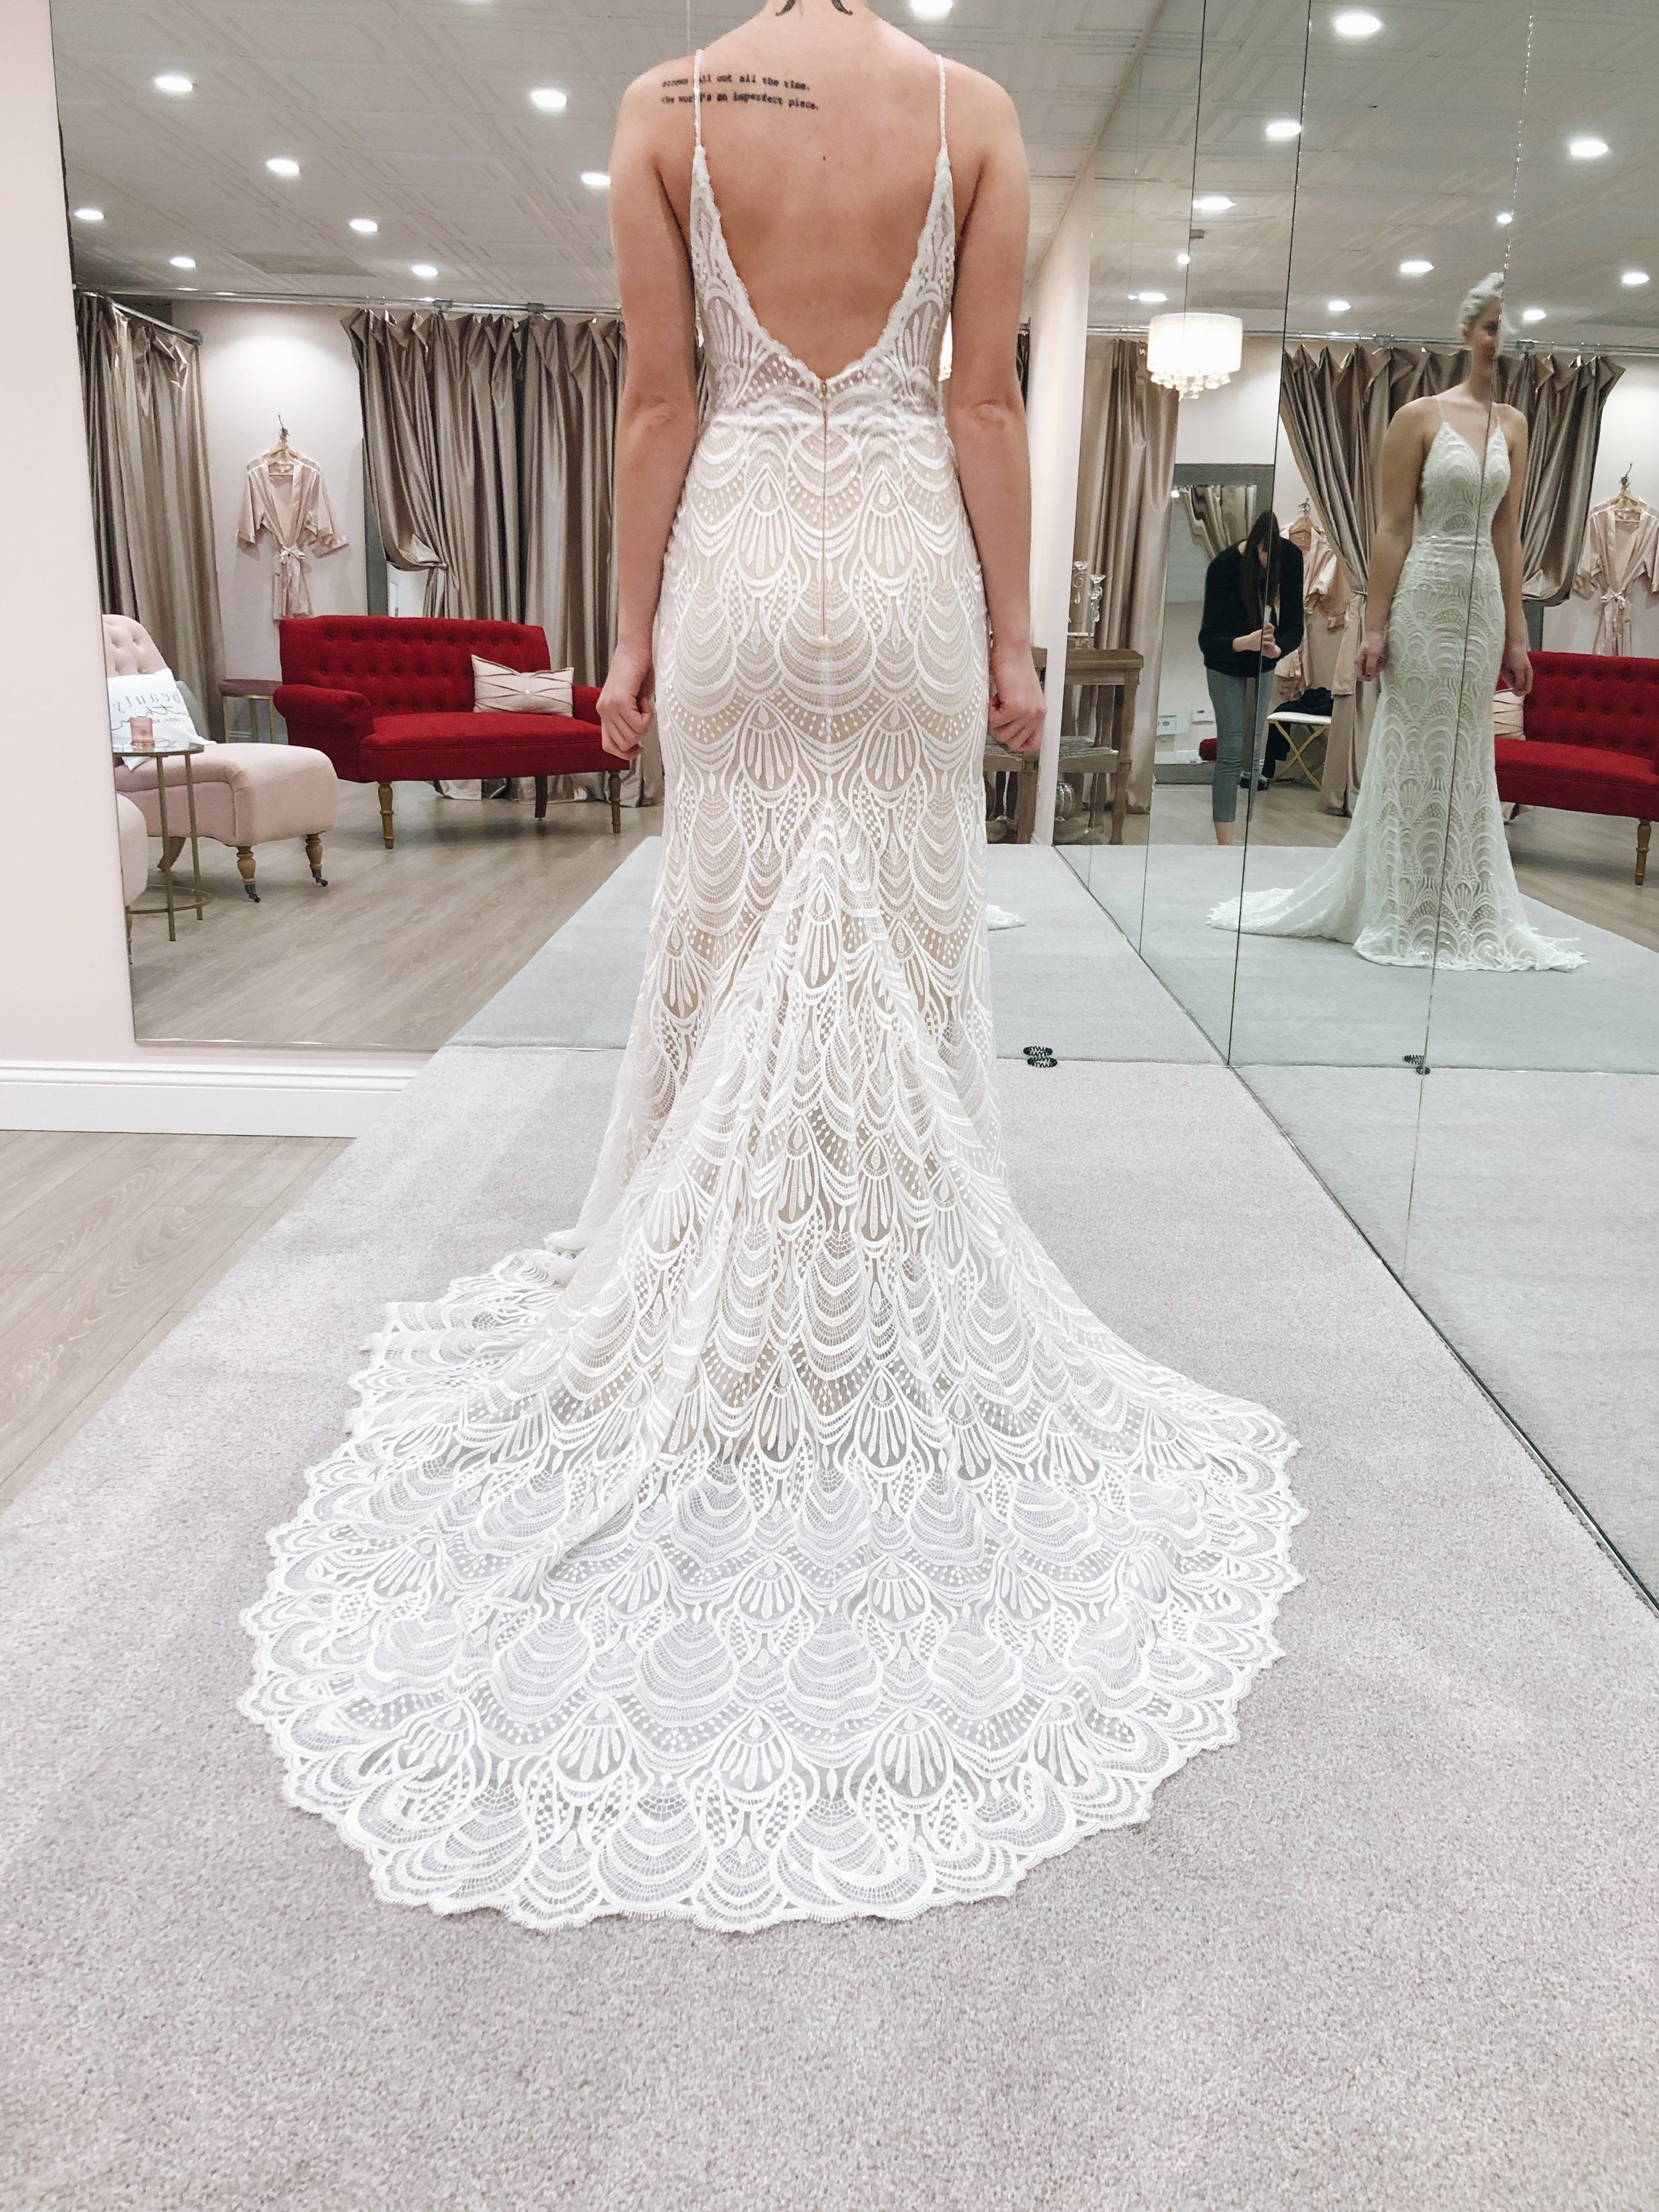 Baby Got Back In The Stunning Jessica Gown This Gown Has A Form Fitting Silhoue Form Fitting Wedding Dress Wedding Dress Long Sleeve Long Sleeve Wedding Gowns [ 3333 x 2500 Pixel ]